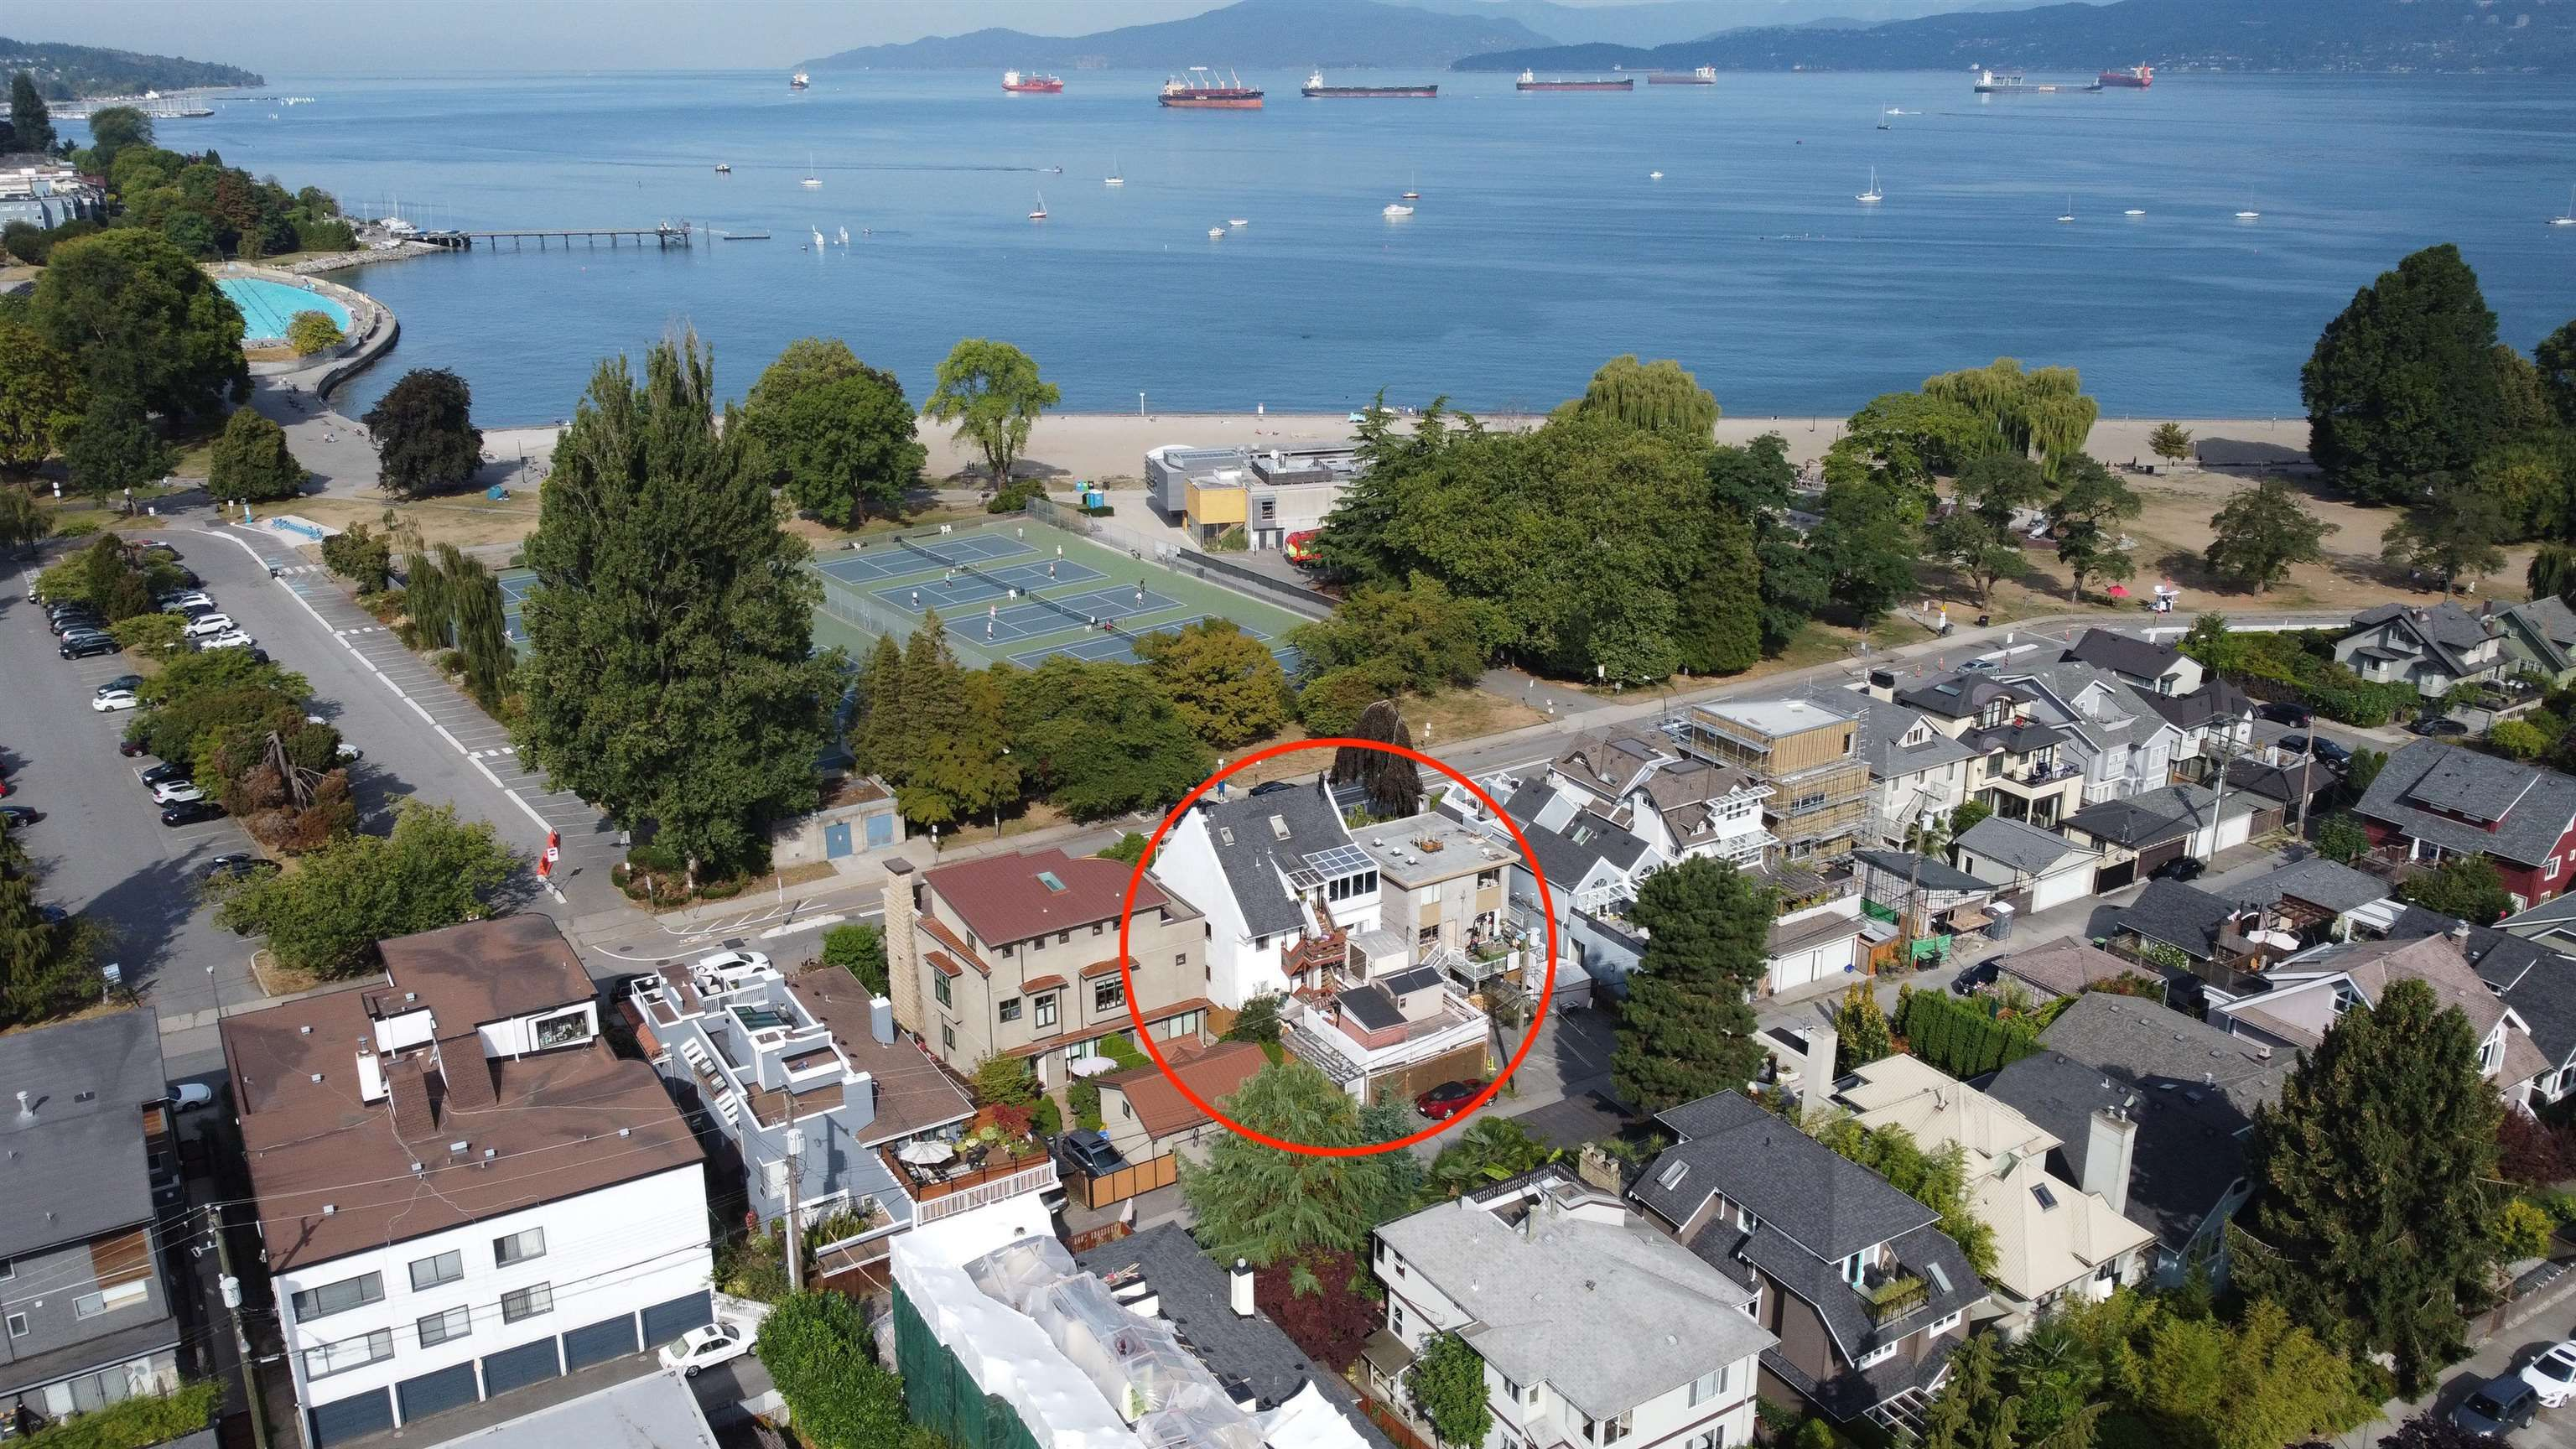 Main Photo: 1354 ARBUTUS Street in Vancouver: Kitsilano House for sale (Vancouver West)  : MLS®# R2612438